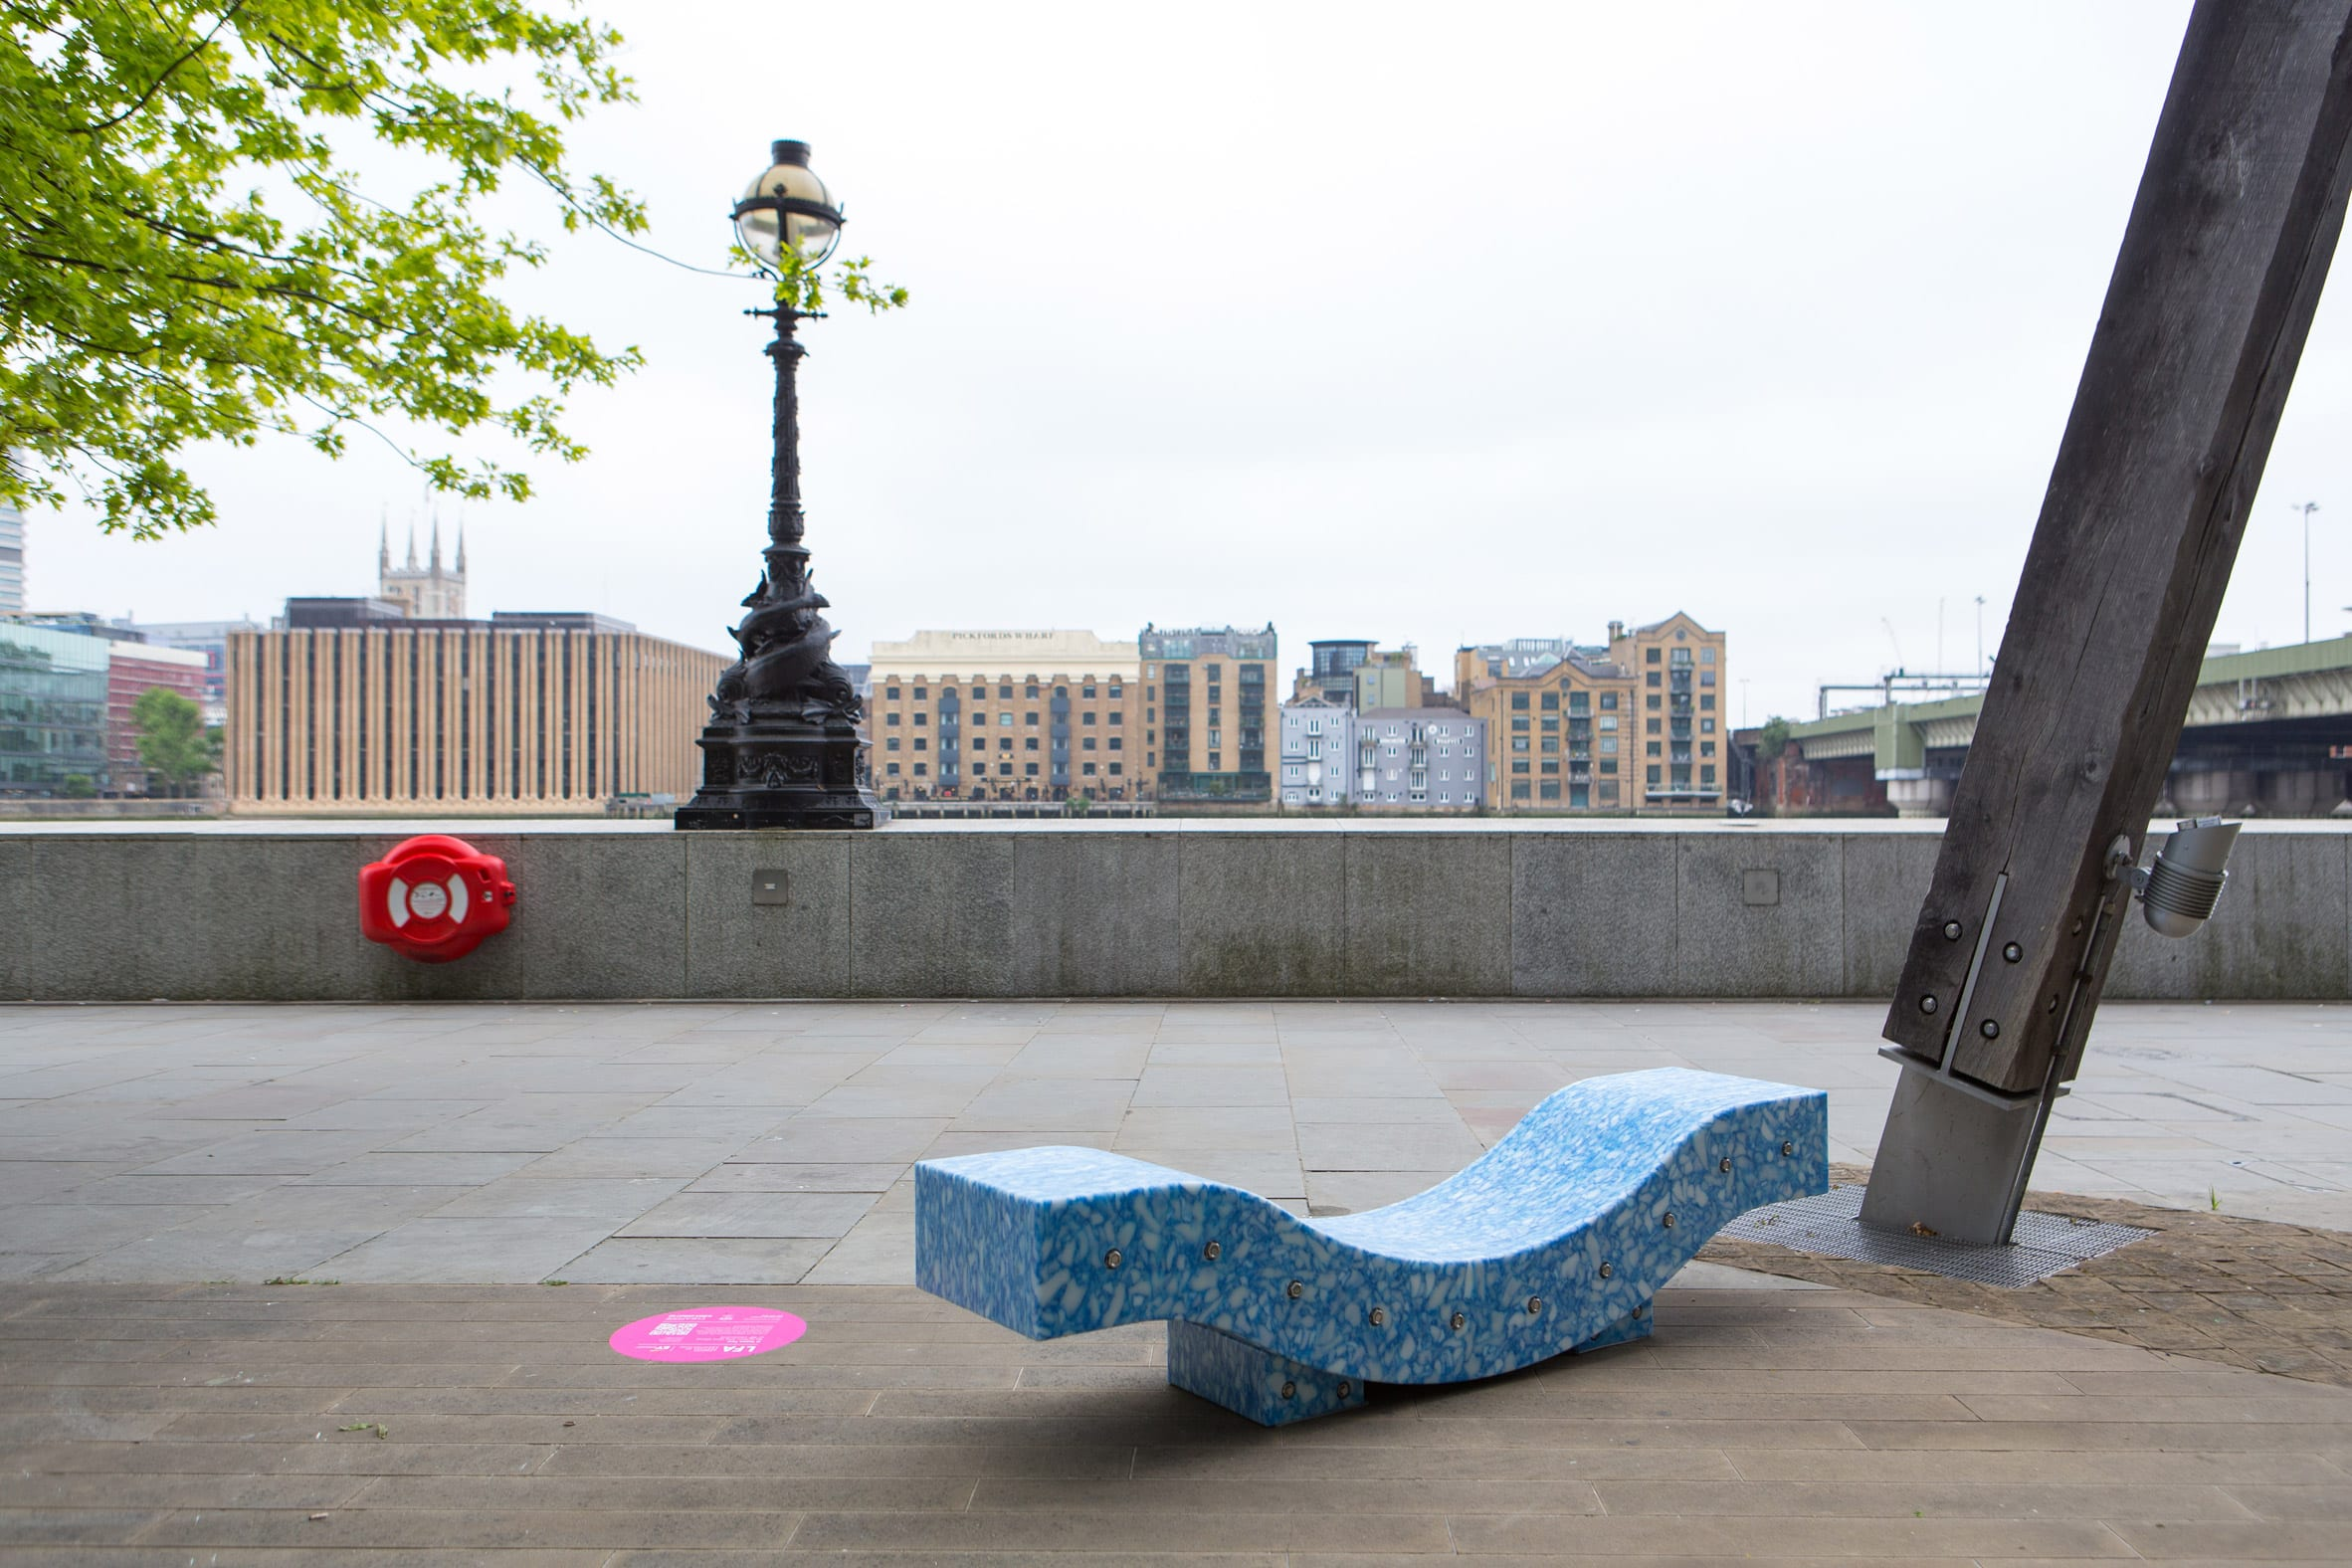 A recycled plastic bench in London